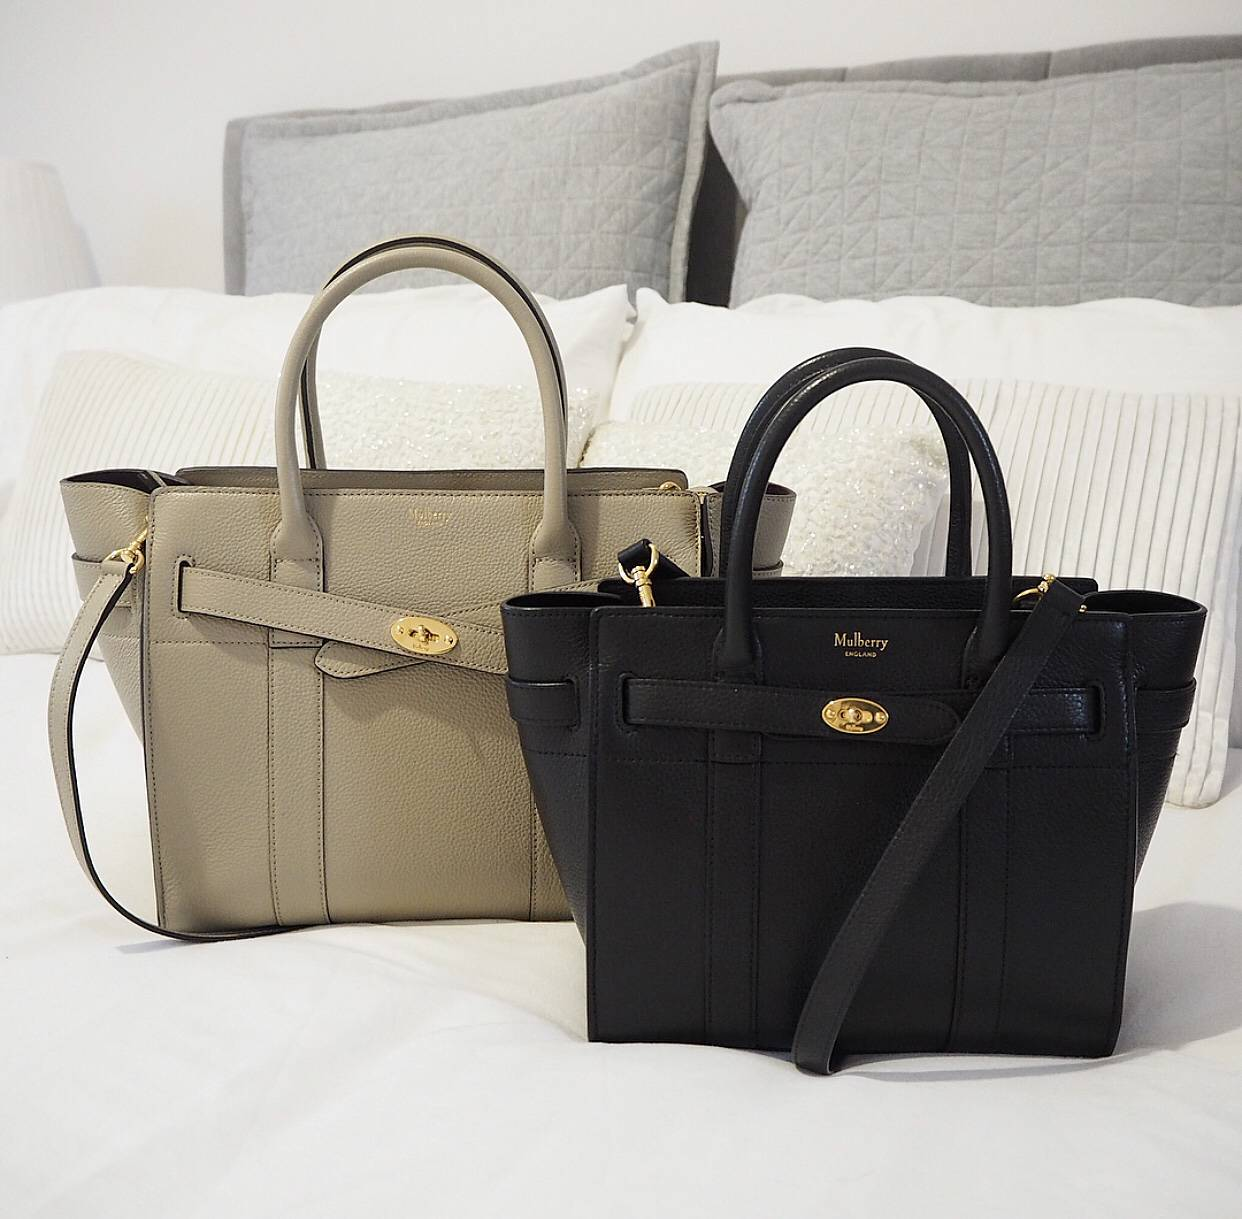 d2213af97e25 The Mulberry Zipped Bayswater Small vs Mini Comparison